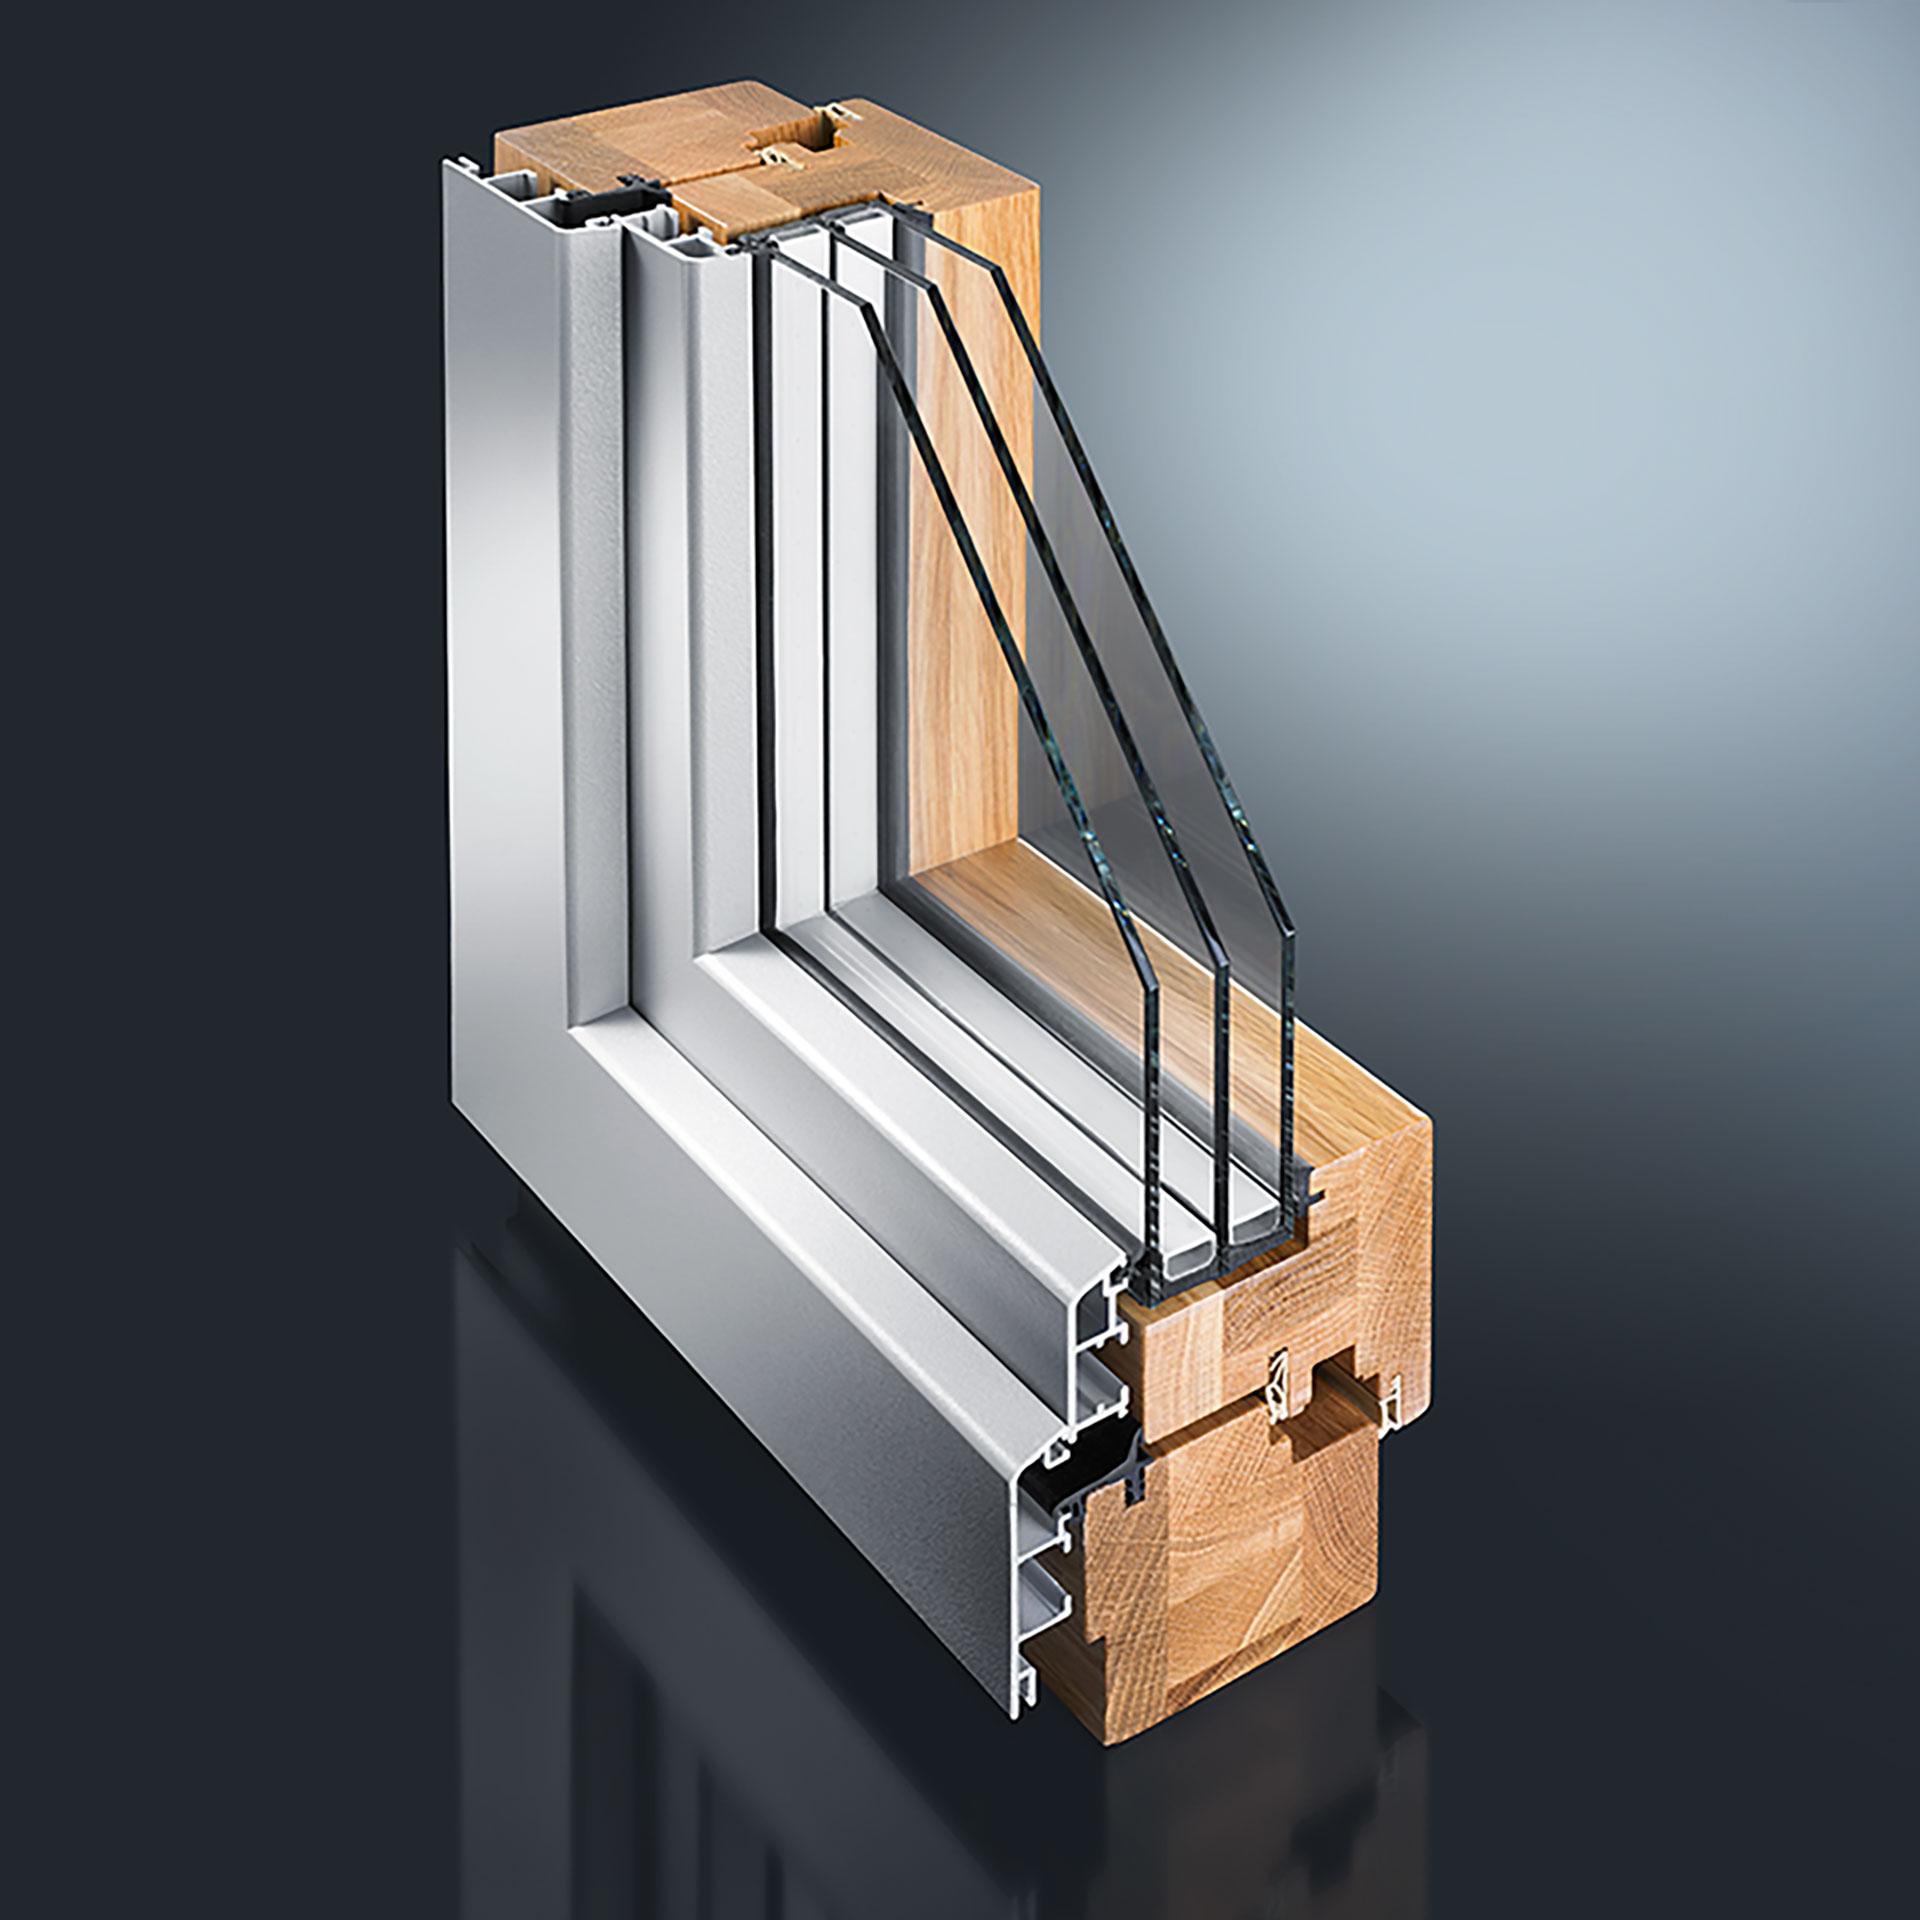 The GUTMANN MIRA wood-aluminium window system can be executed in double, single and pitched rebate construction.